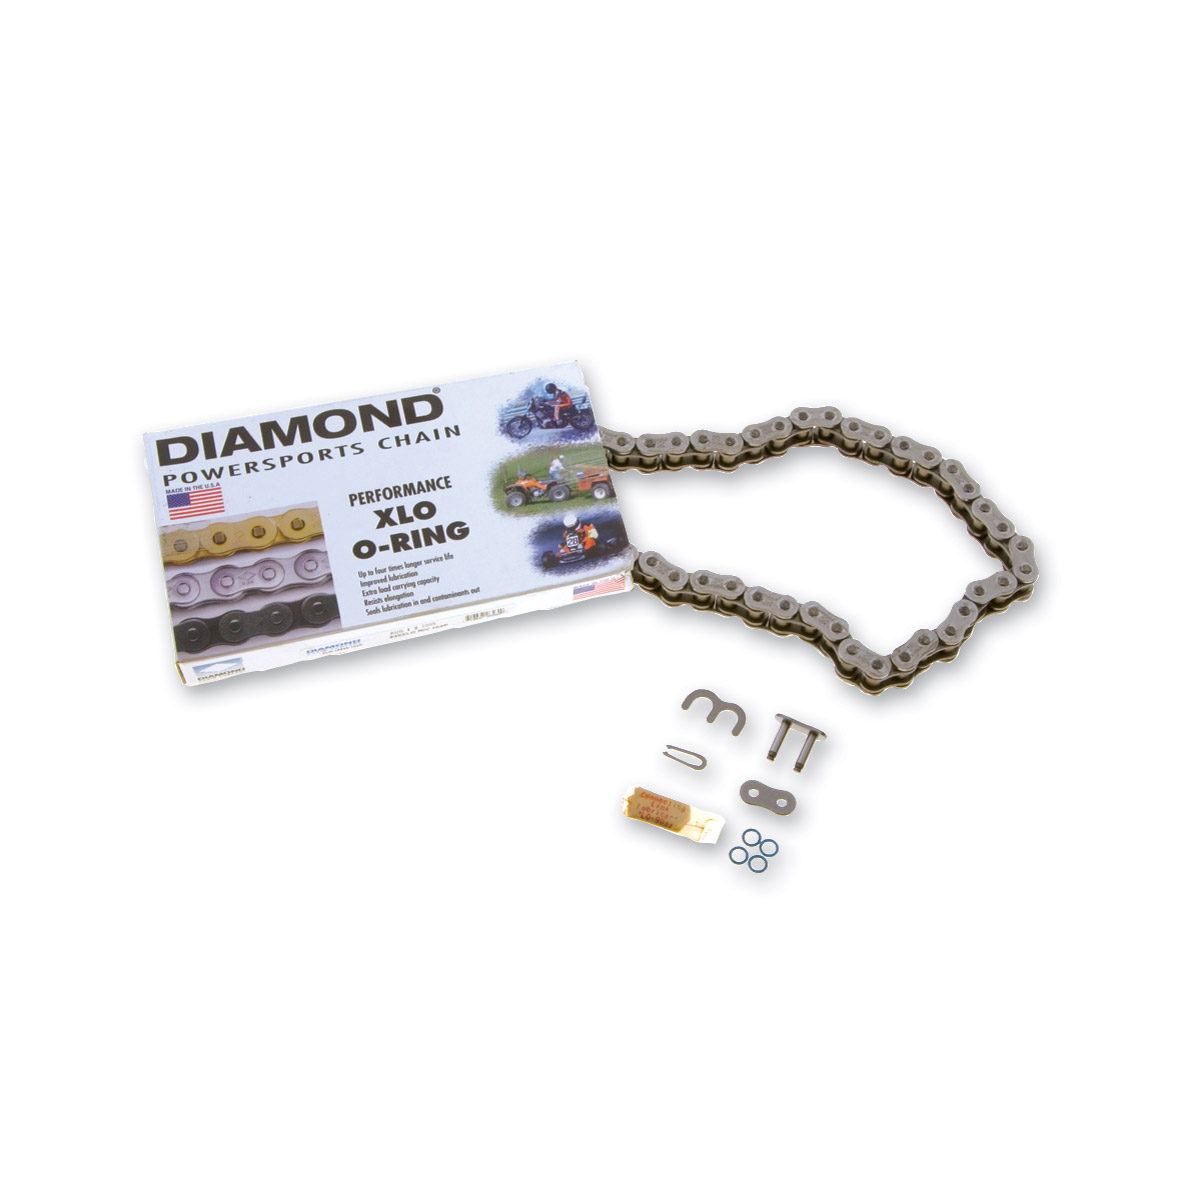 O-Ring 120 Link Chain,for Harley Davidson,by Diamond